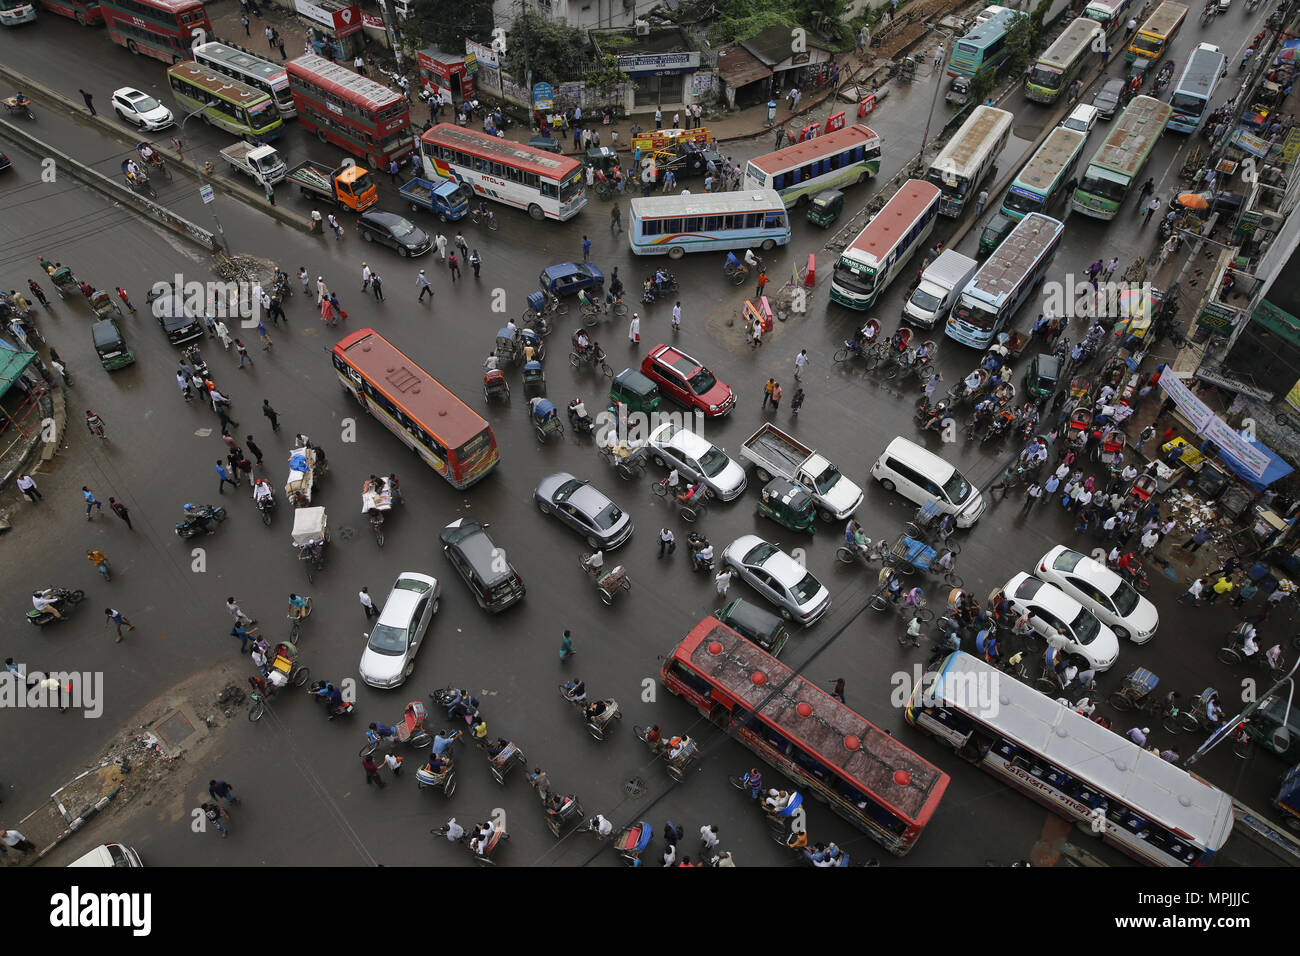 Dhaka, Bangladesh. Traffic jam seen at an intersection during the Ramadan in Dhaka, Bangladesh on May 23, 2018.  Last 10 years in Dhaka, average traffic speed has dropped from 21 km/hour to 7 km/hour, only slightly above the average walking speed. Congestion in Dhaka eats up 3.2 million working hours per day according to static reports. © Rehman Asad/Alamy Stock Photo - Stock Image